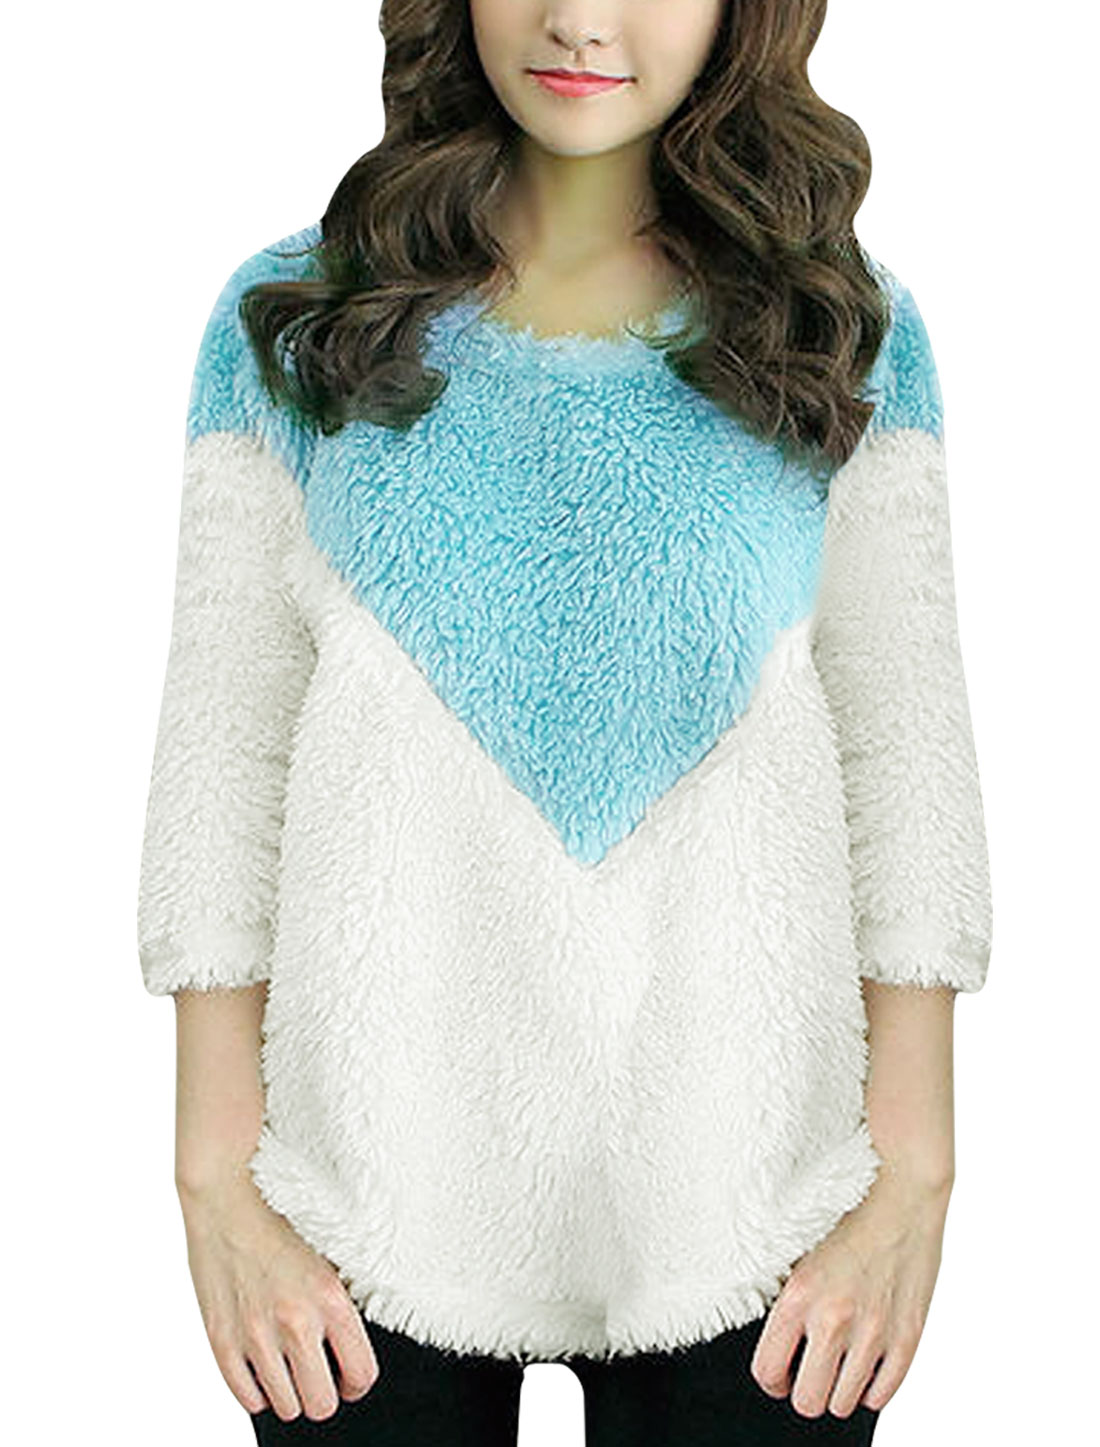 Womens Long Sleeve Contrast Color White Light Blue Sweater Top S